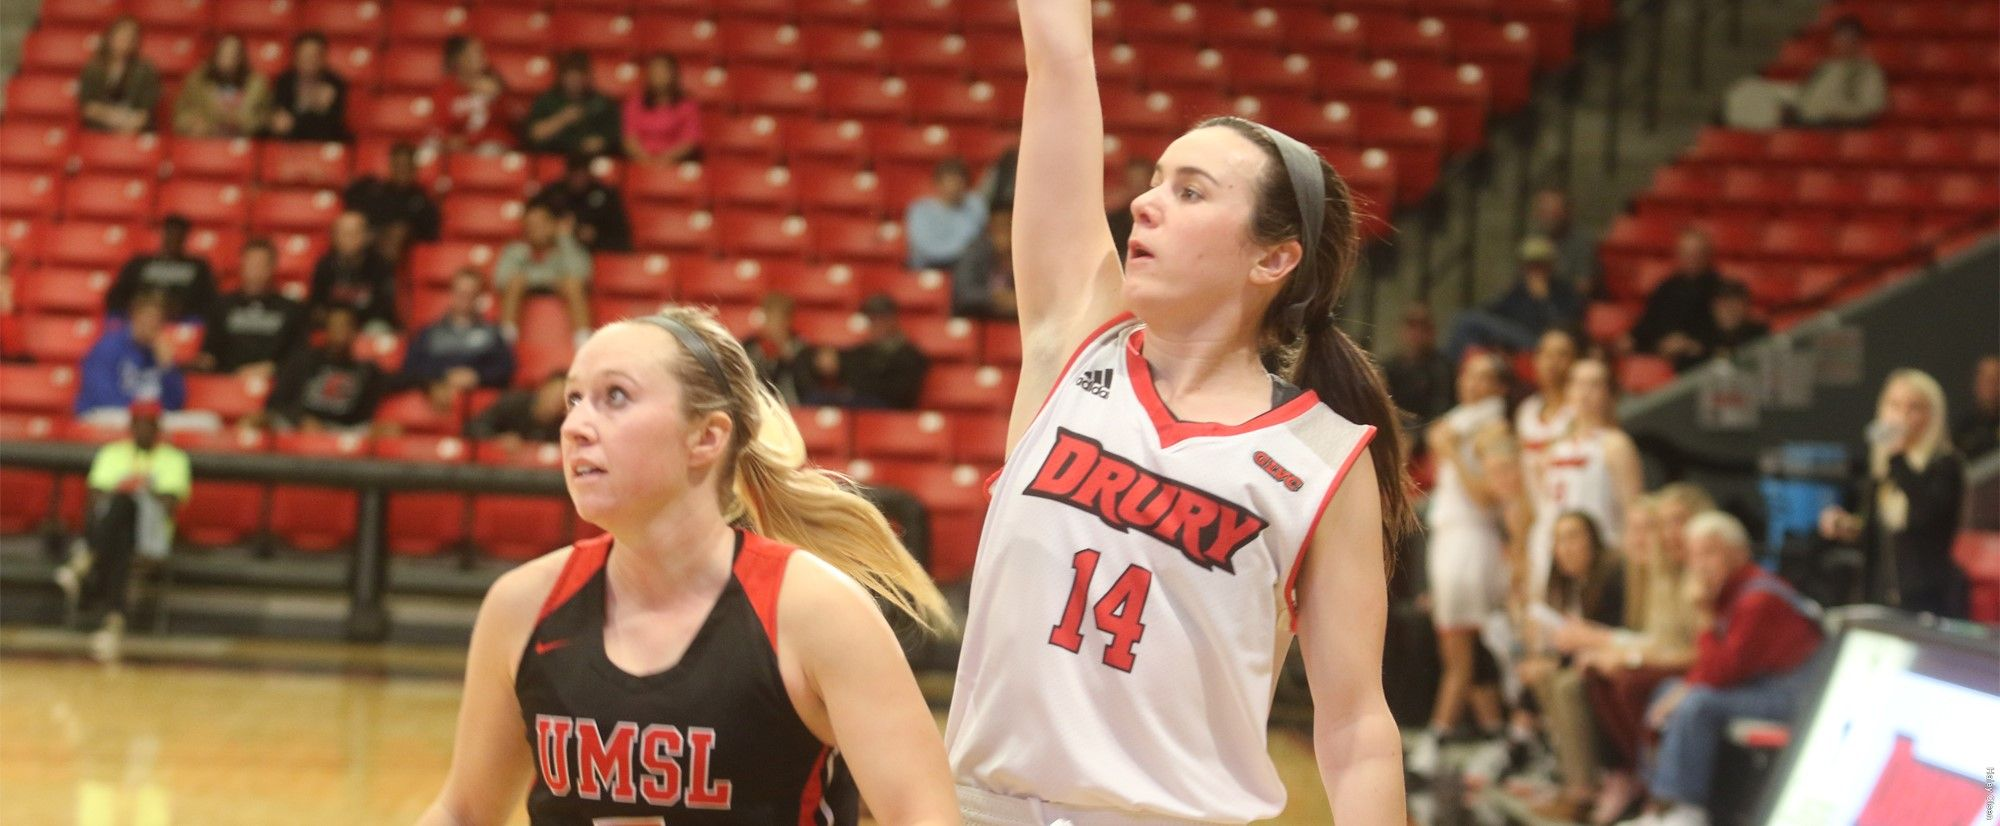 Big Second Quarter Lifts Lady Panthers Past Umsl Lady Womens Basketball Athlete